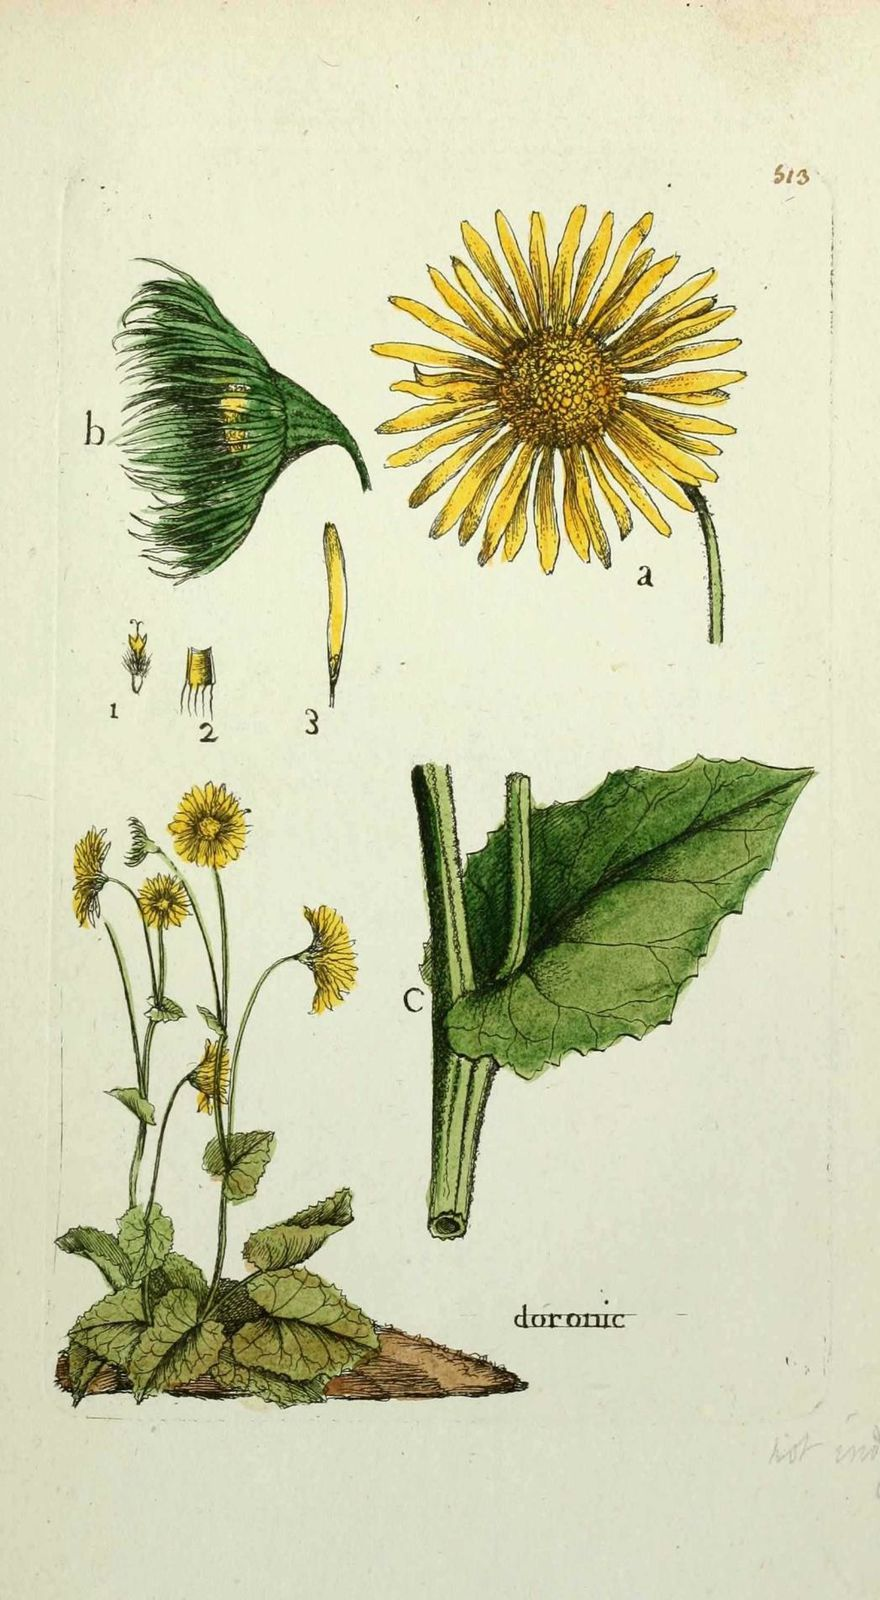 doronic - doronicum scorpioides ( queue de scorpion )